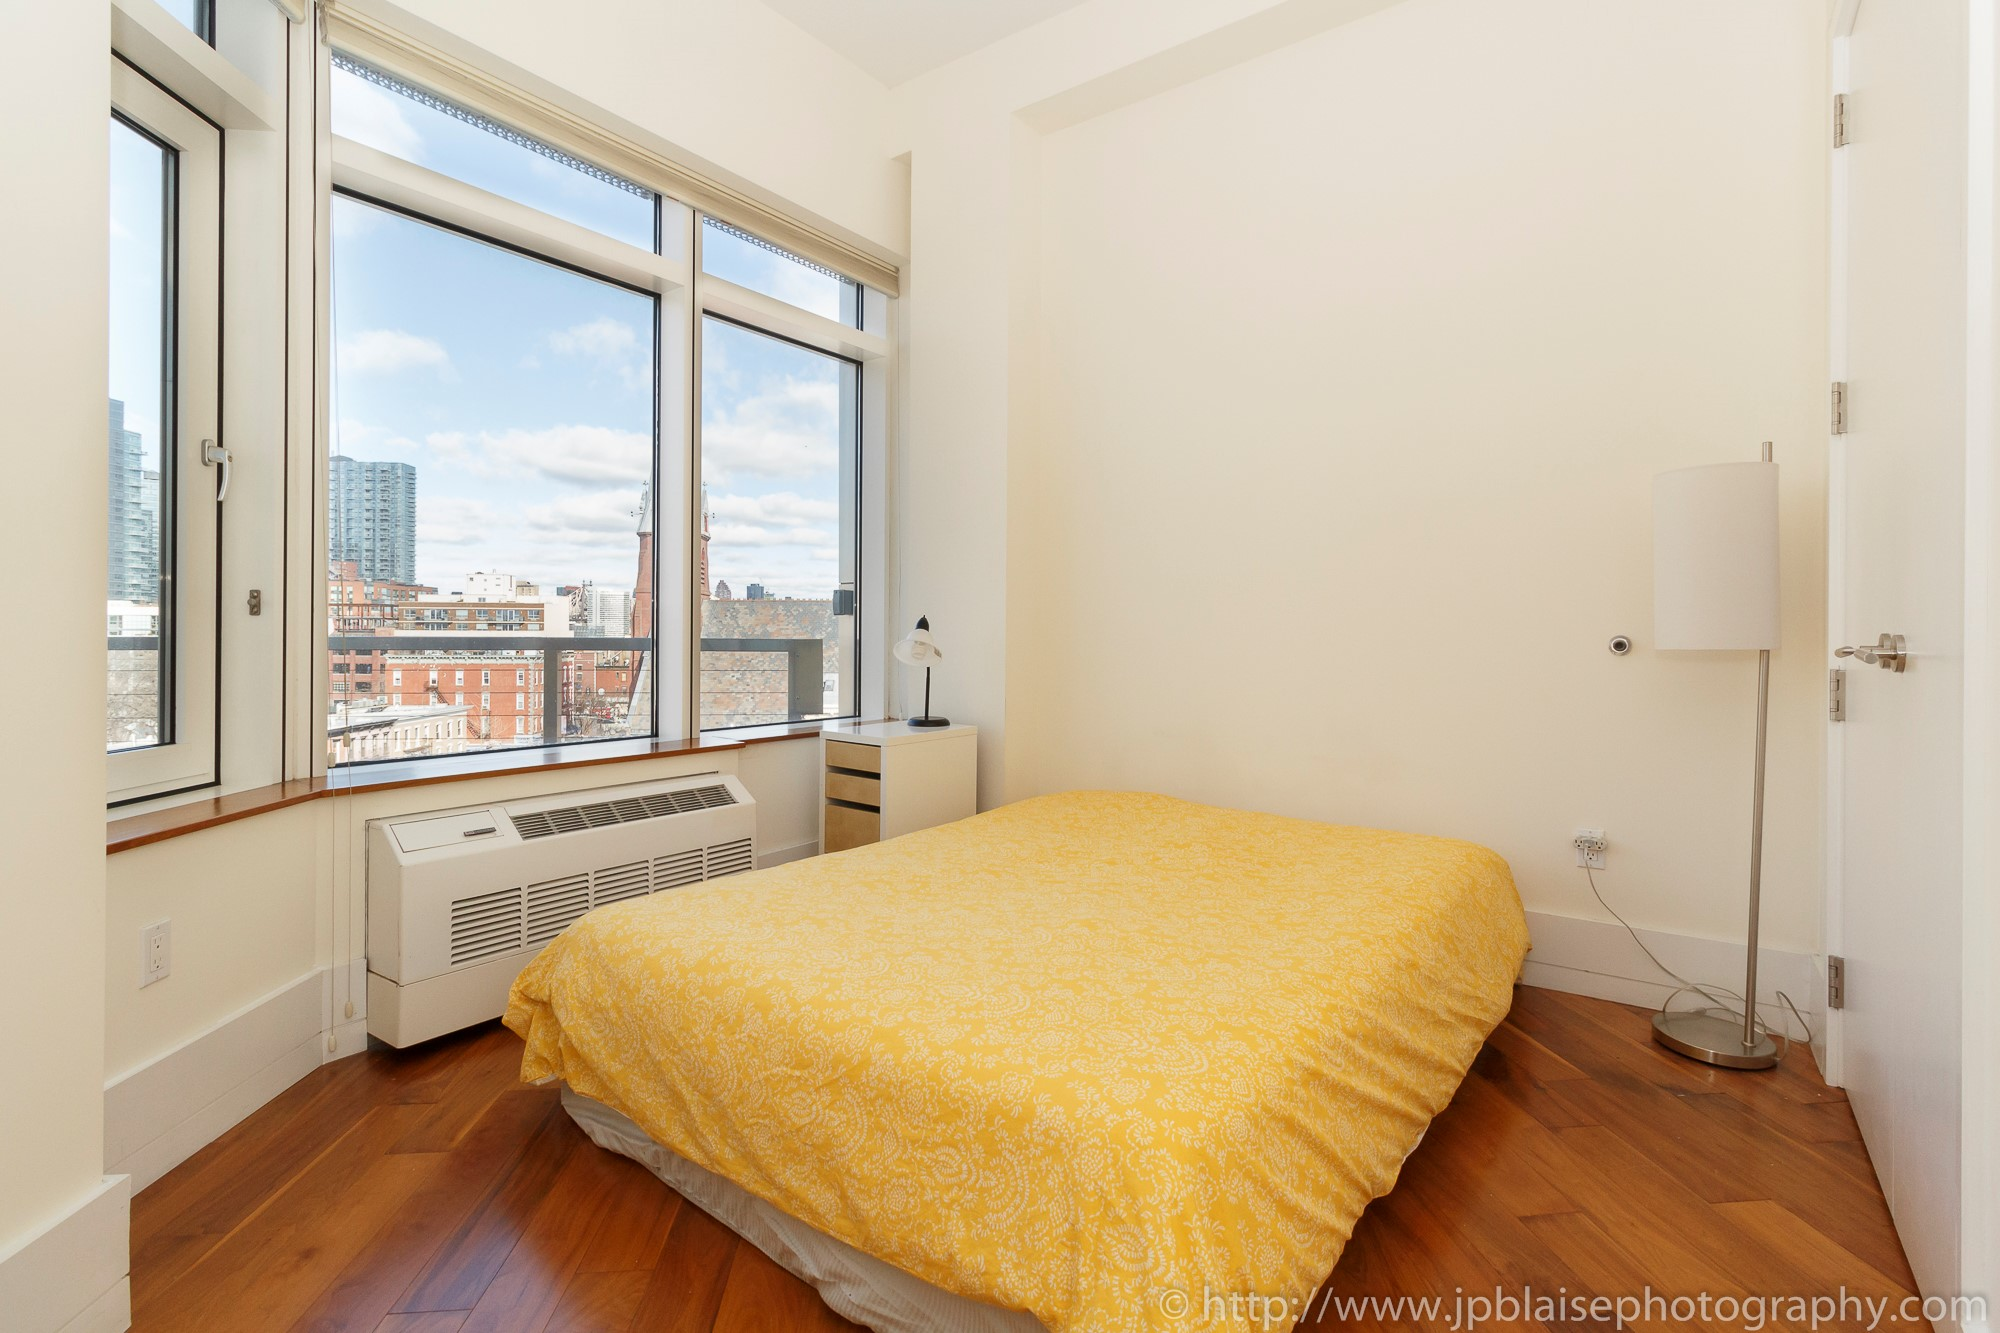 Nyc apartment photographer session one bedroom condo unit - Long island city 3 bedroom apartments ...